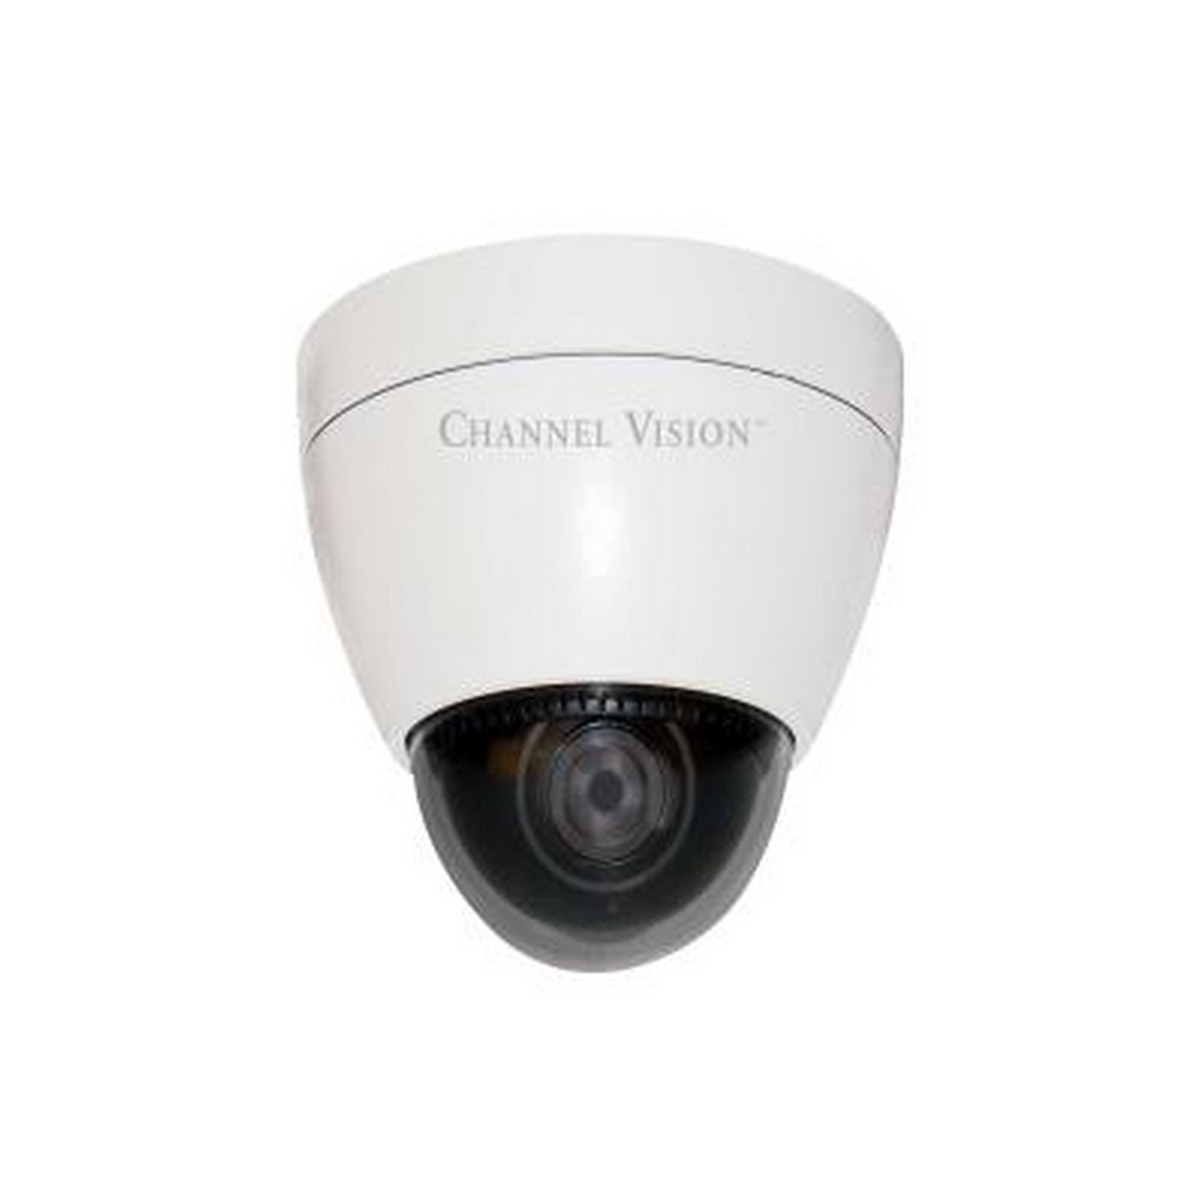 Channelvision 1.3 Megapixel Mini Dome IP Camera w/POE (Power Supply Not Included, Power Supply 5017PS)